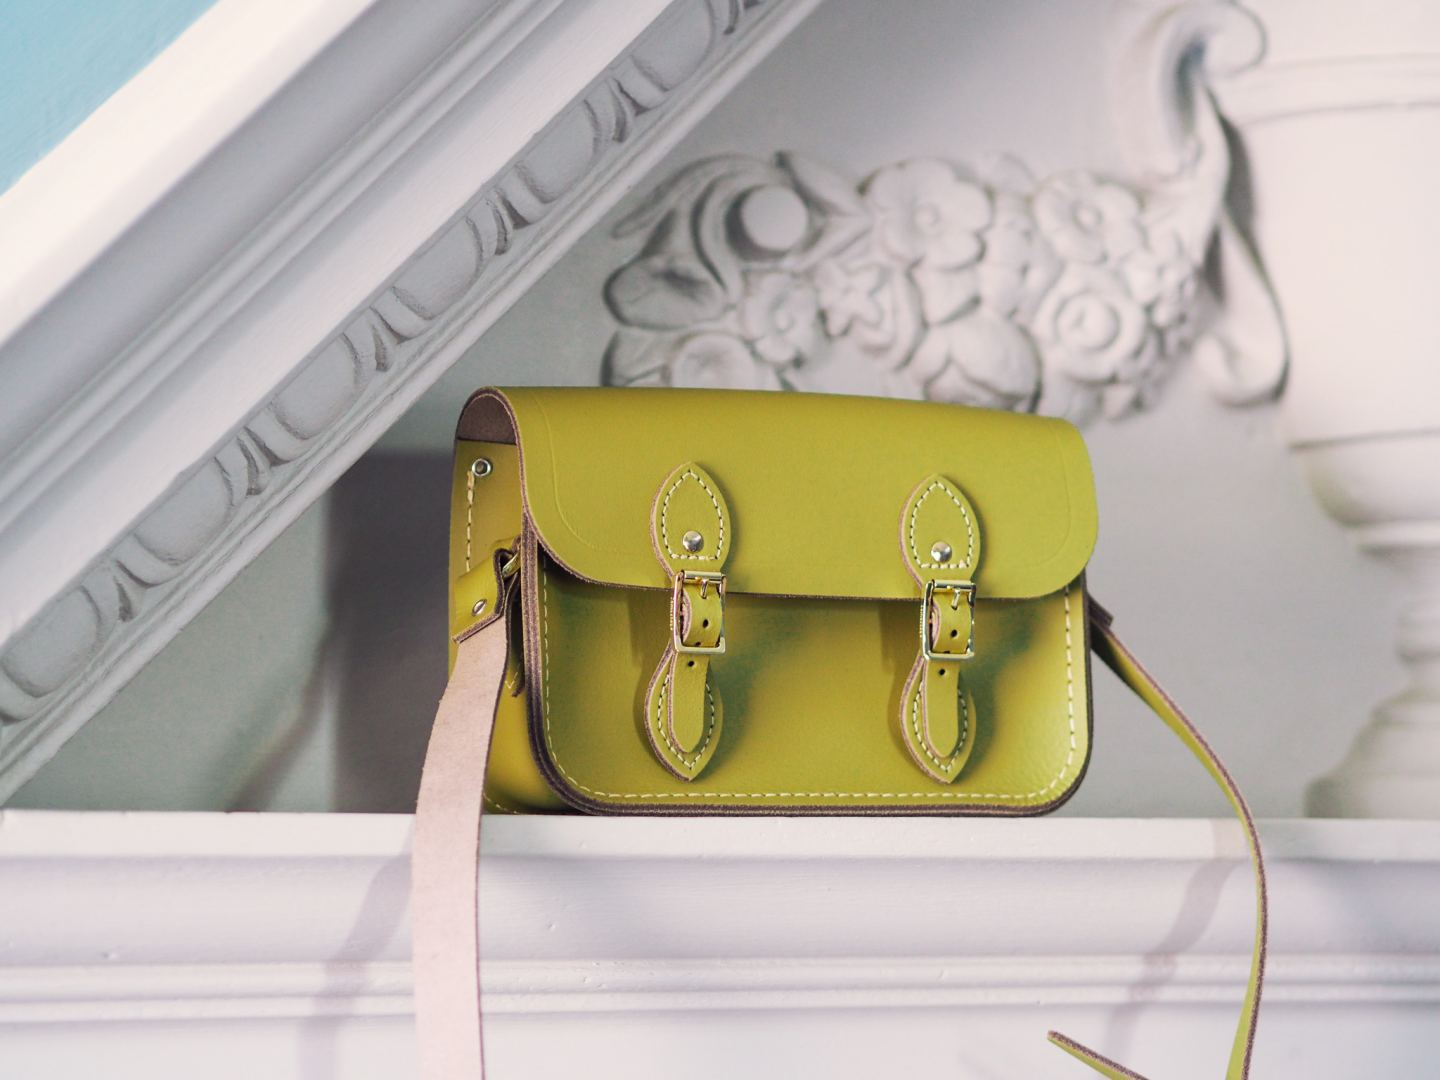 Cambridge Satchel Company 'The Little One' Review